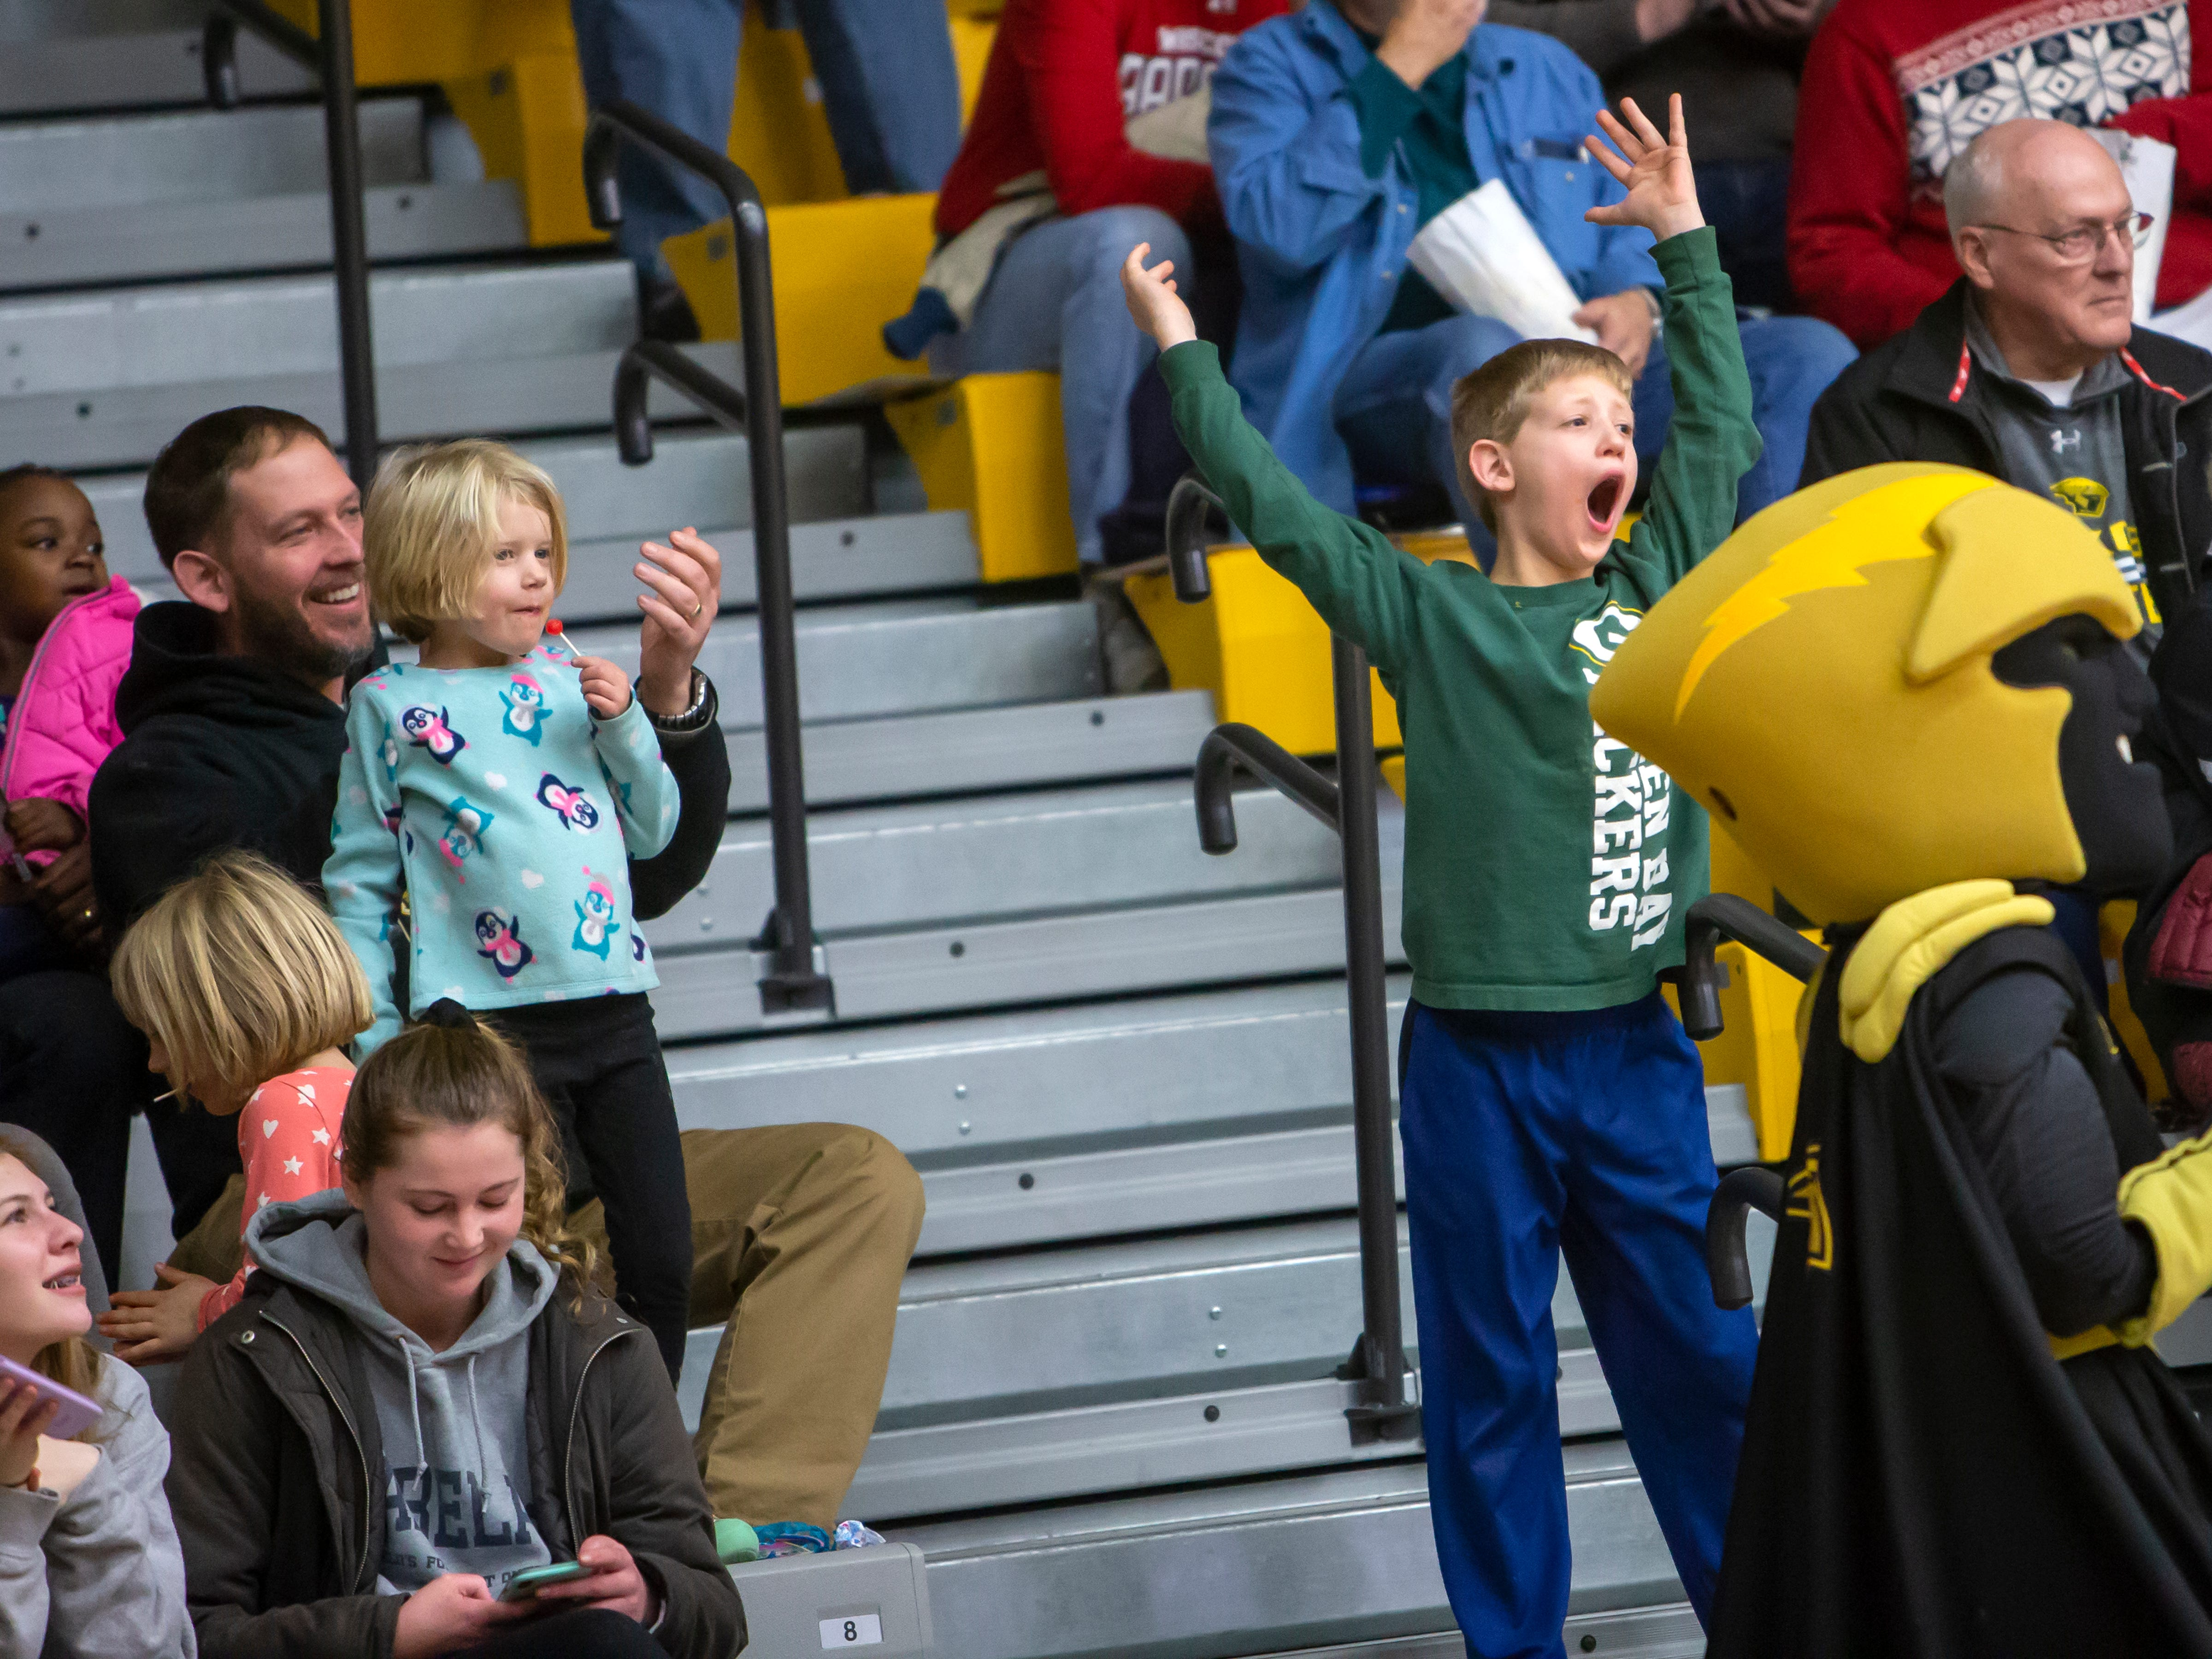 Donald Morrison in the crowd reacts to the halftime entertainment at the Kolf Sports Center on Saturday, December 8, 2018.